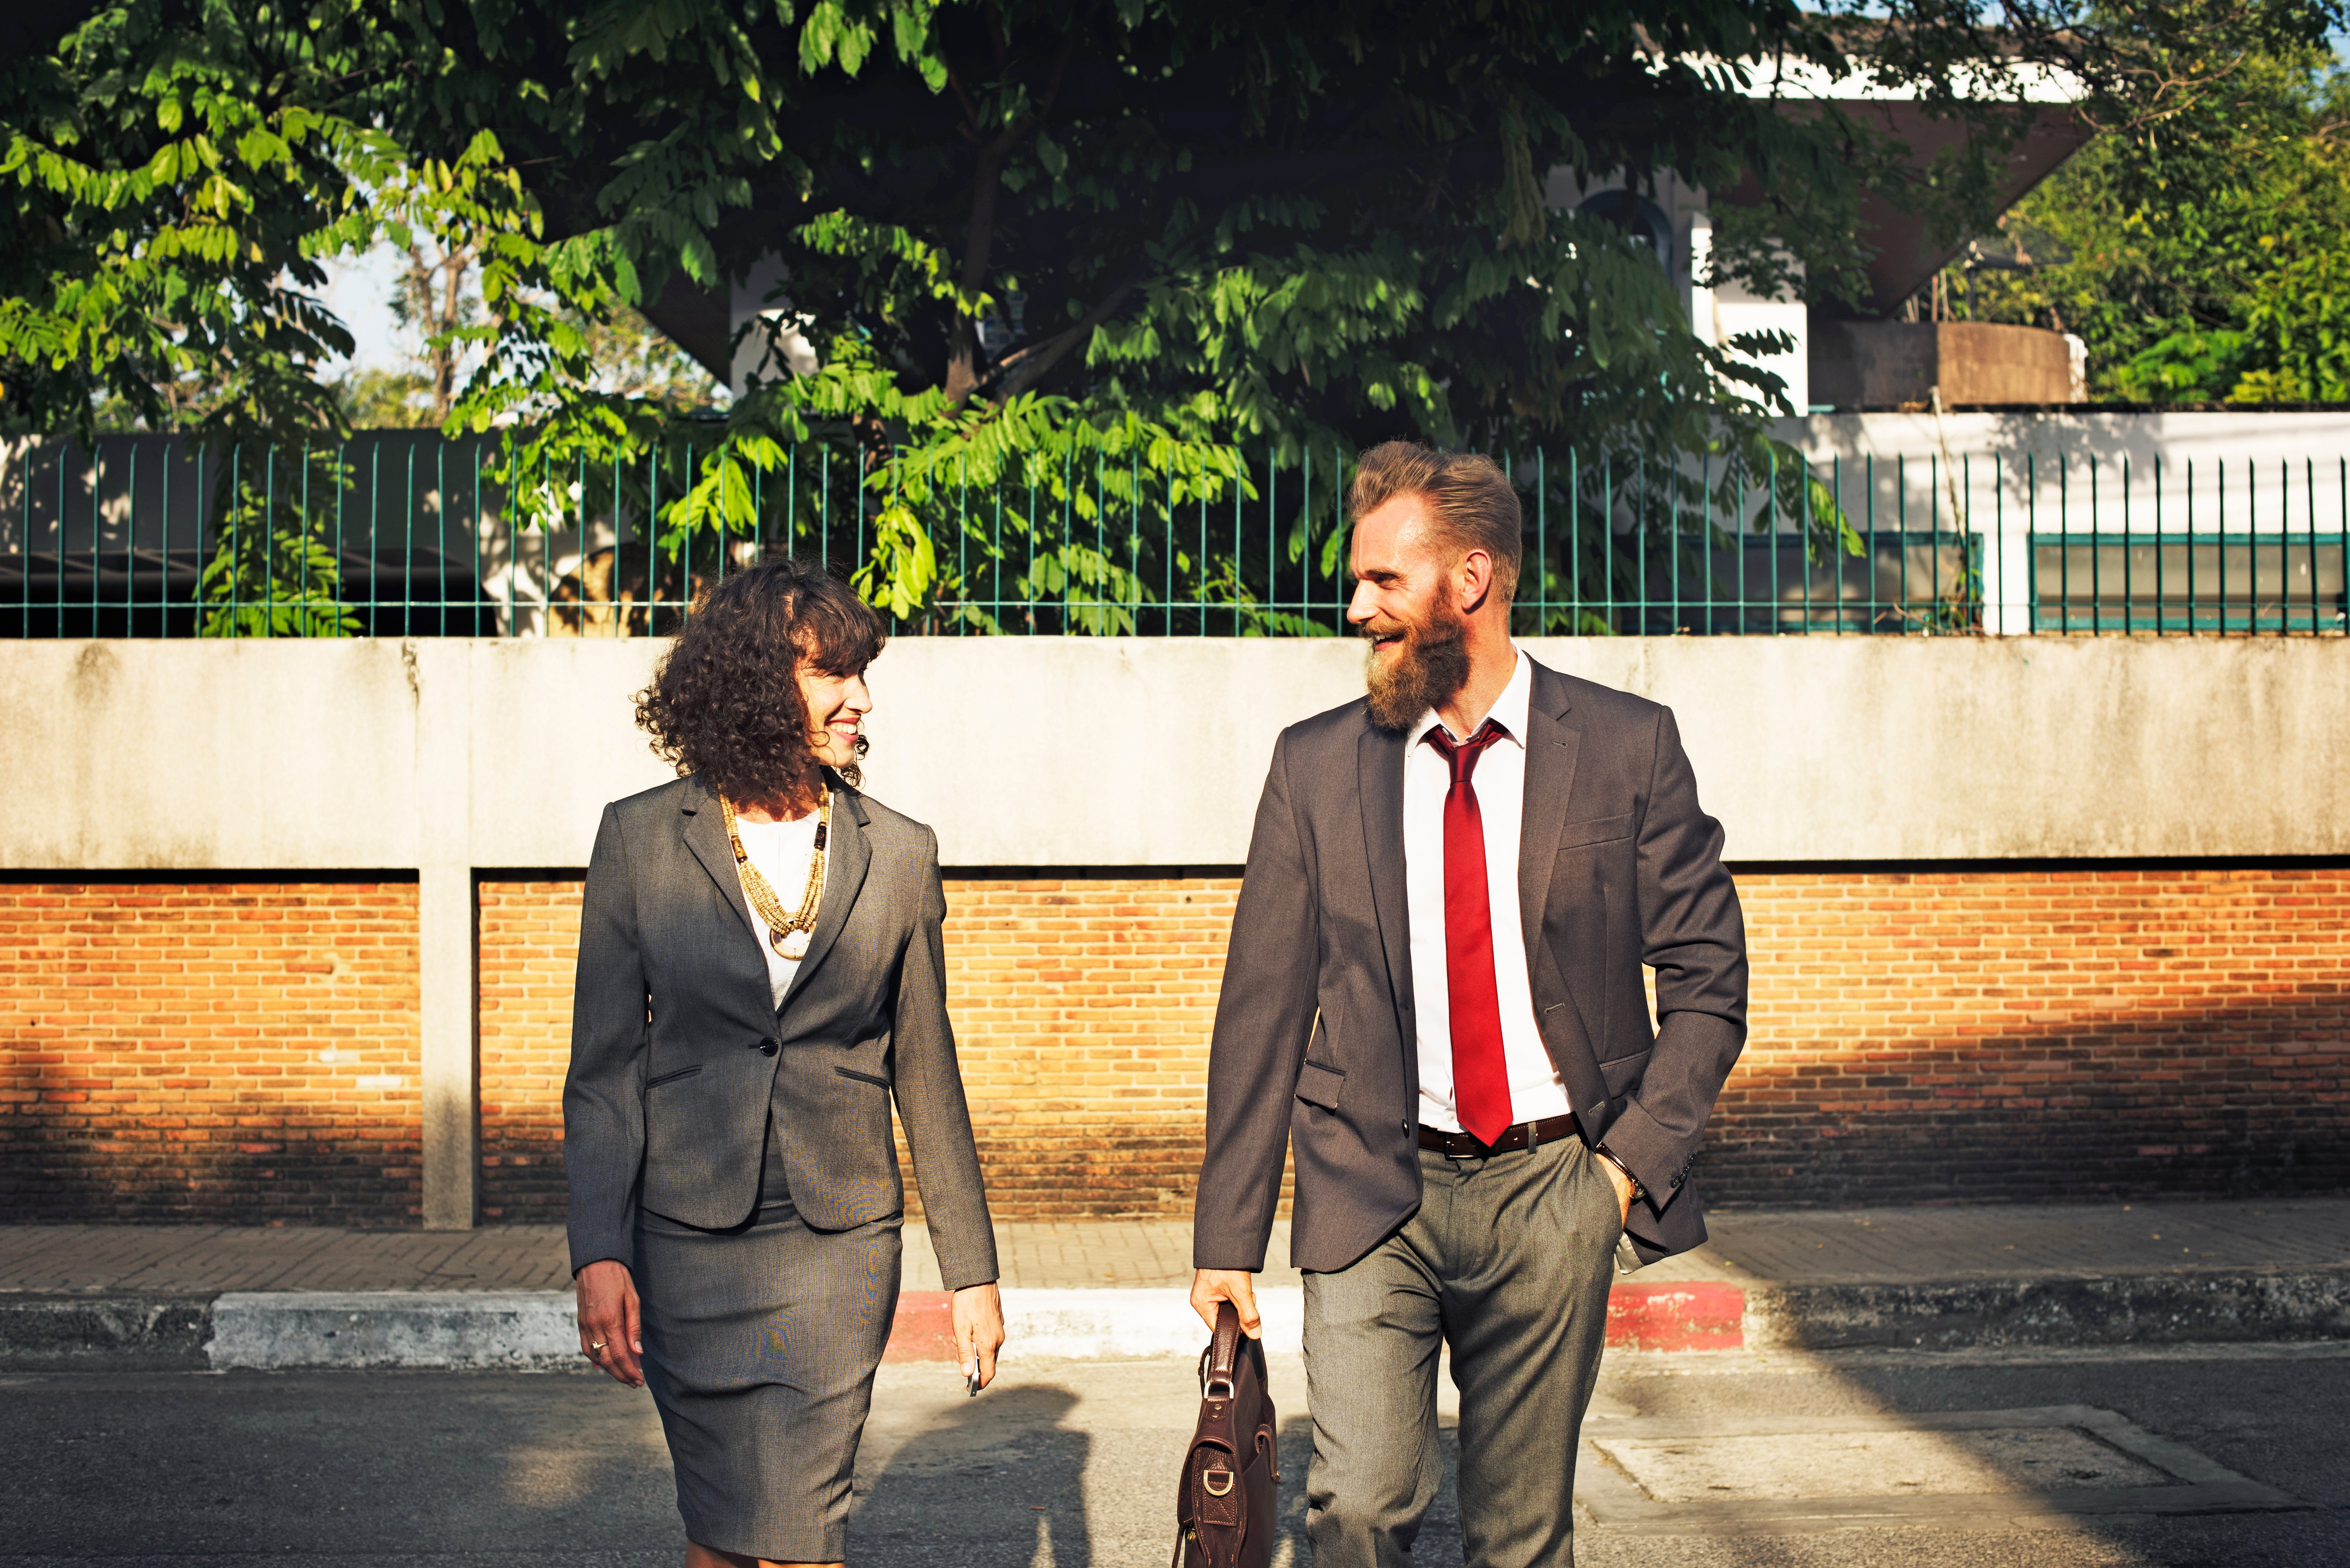 Woman and man in suits talking